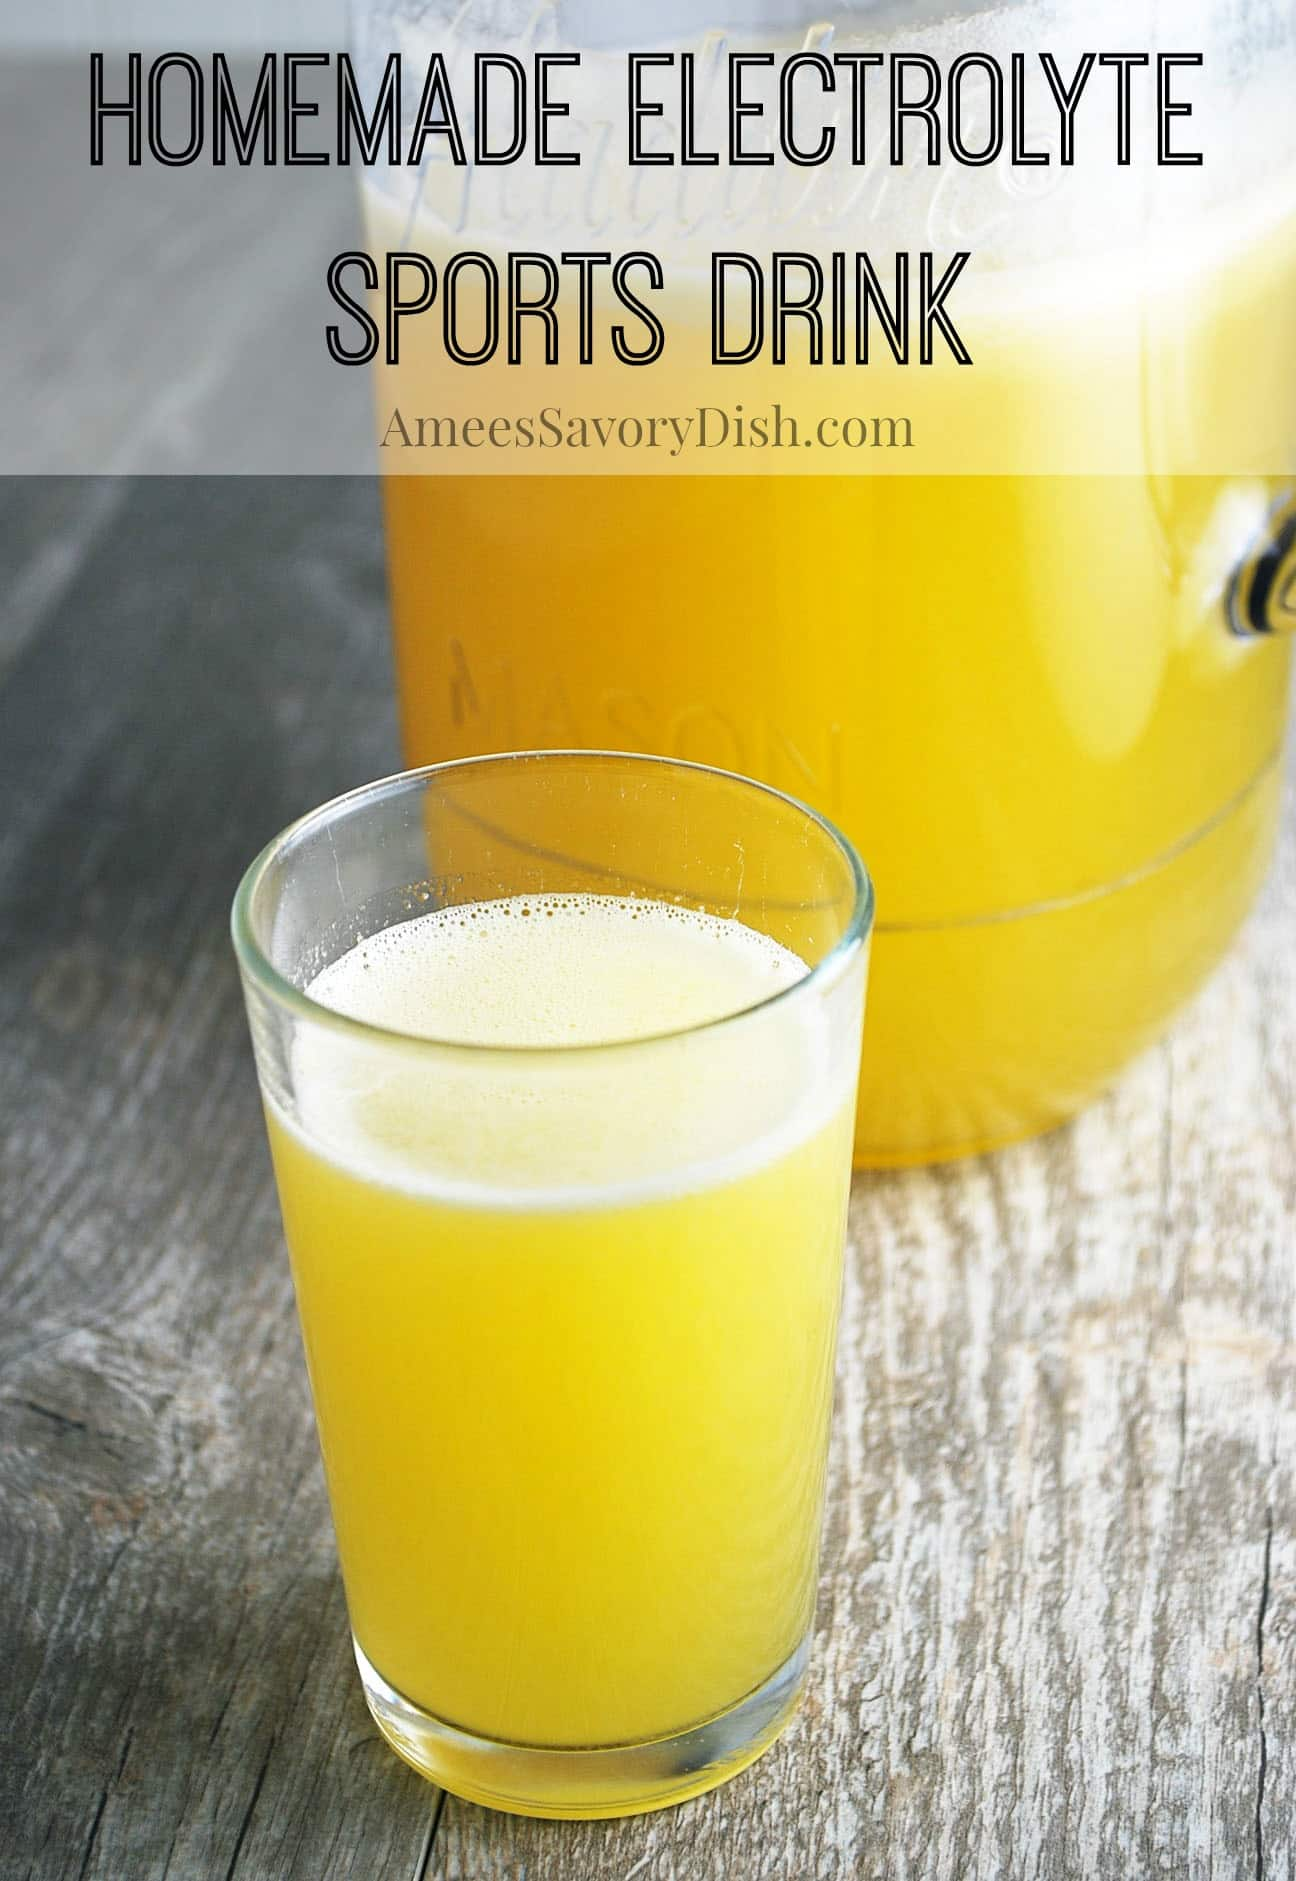 Homemade Electrolyte Sports Drink recipe made with fresh oranges, maple syrup and salt